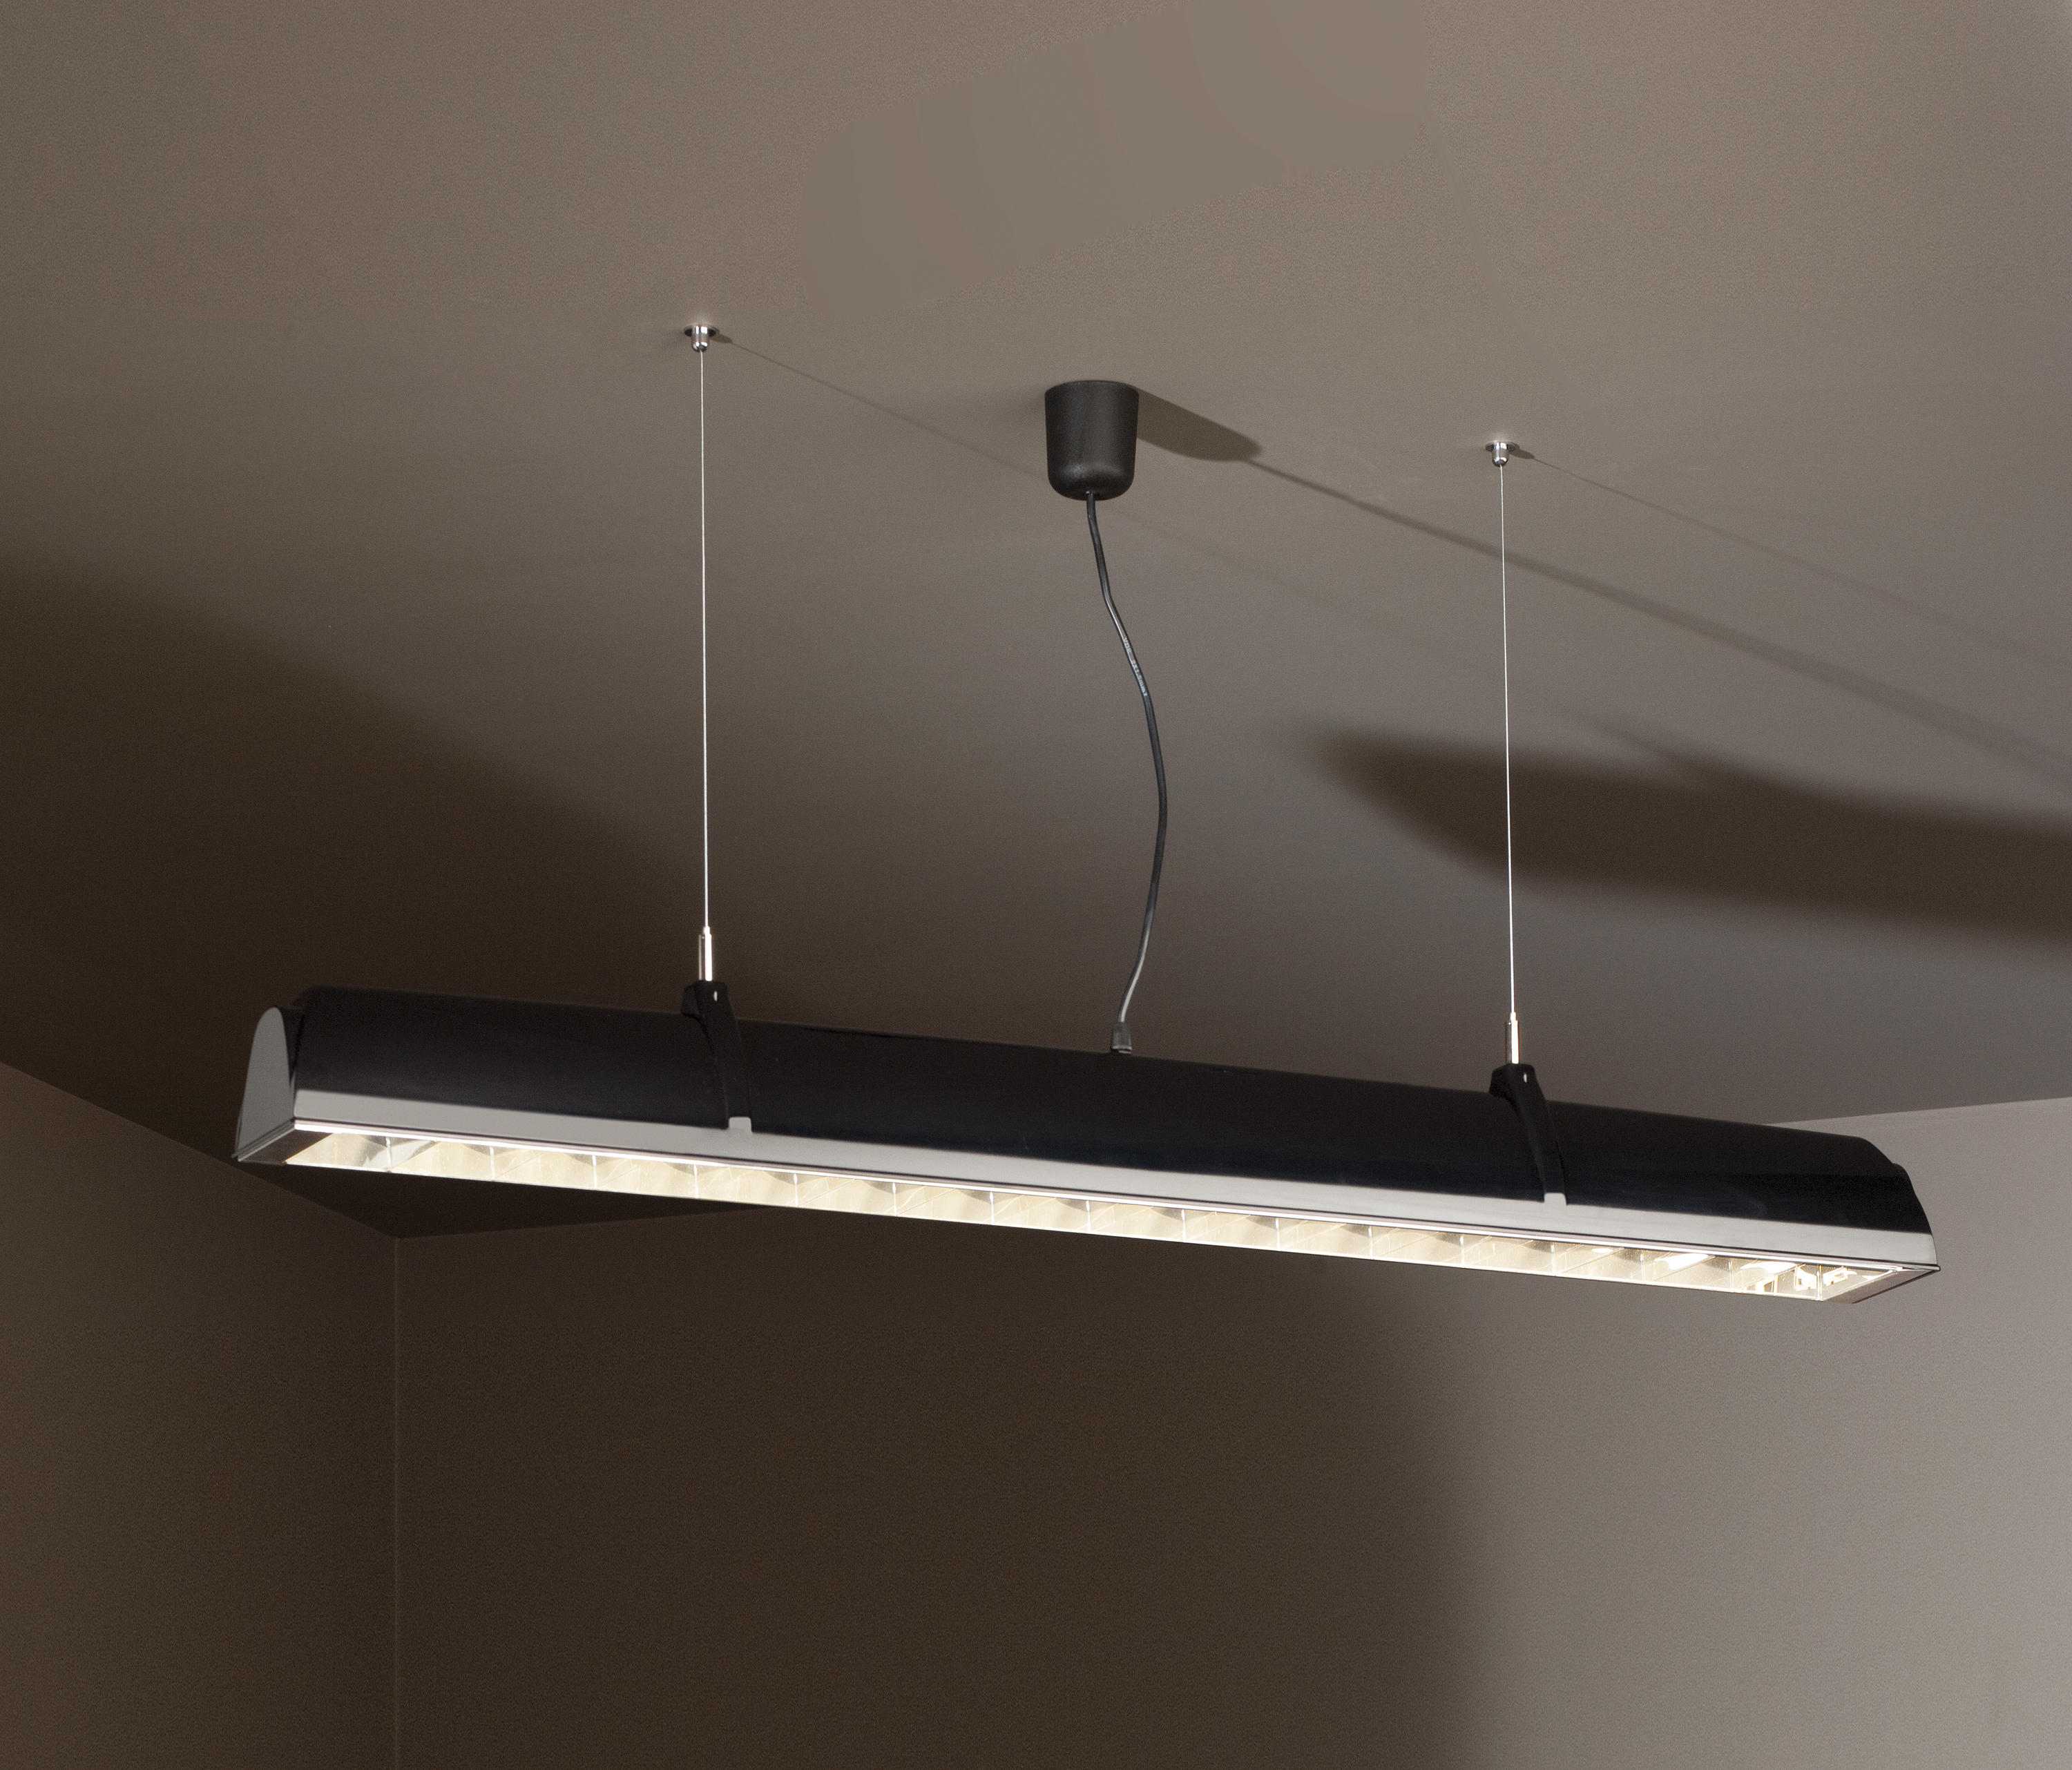 Archimedes by TAL   General lighting ... & ARCHIMEDES - General lighting from TAL   Architonic azcodes.com